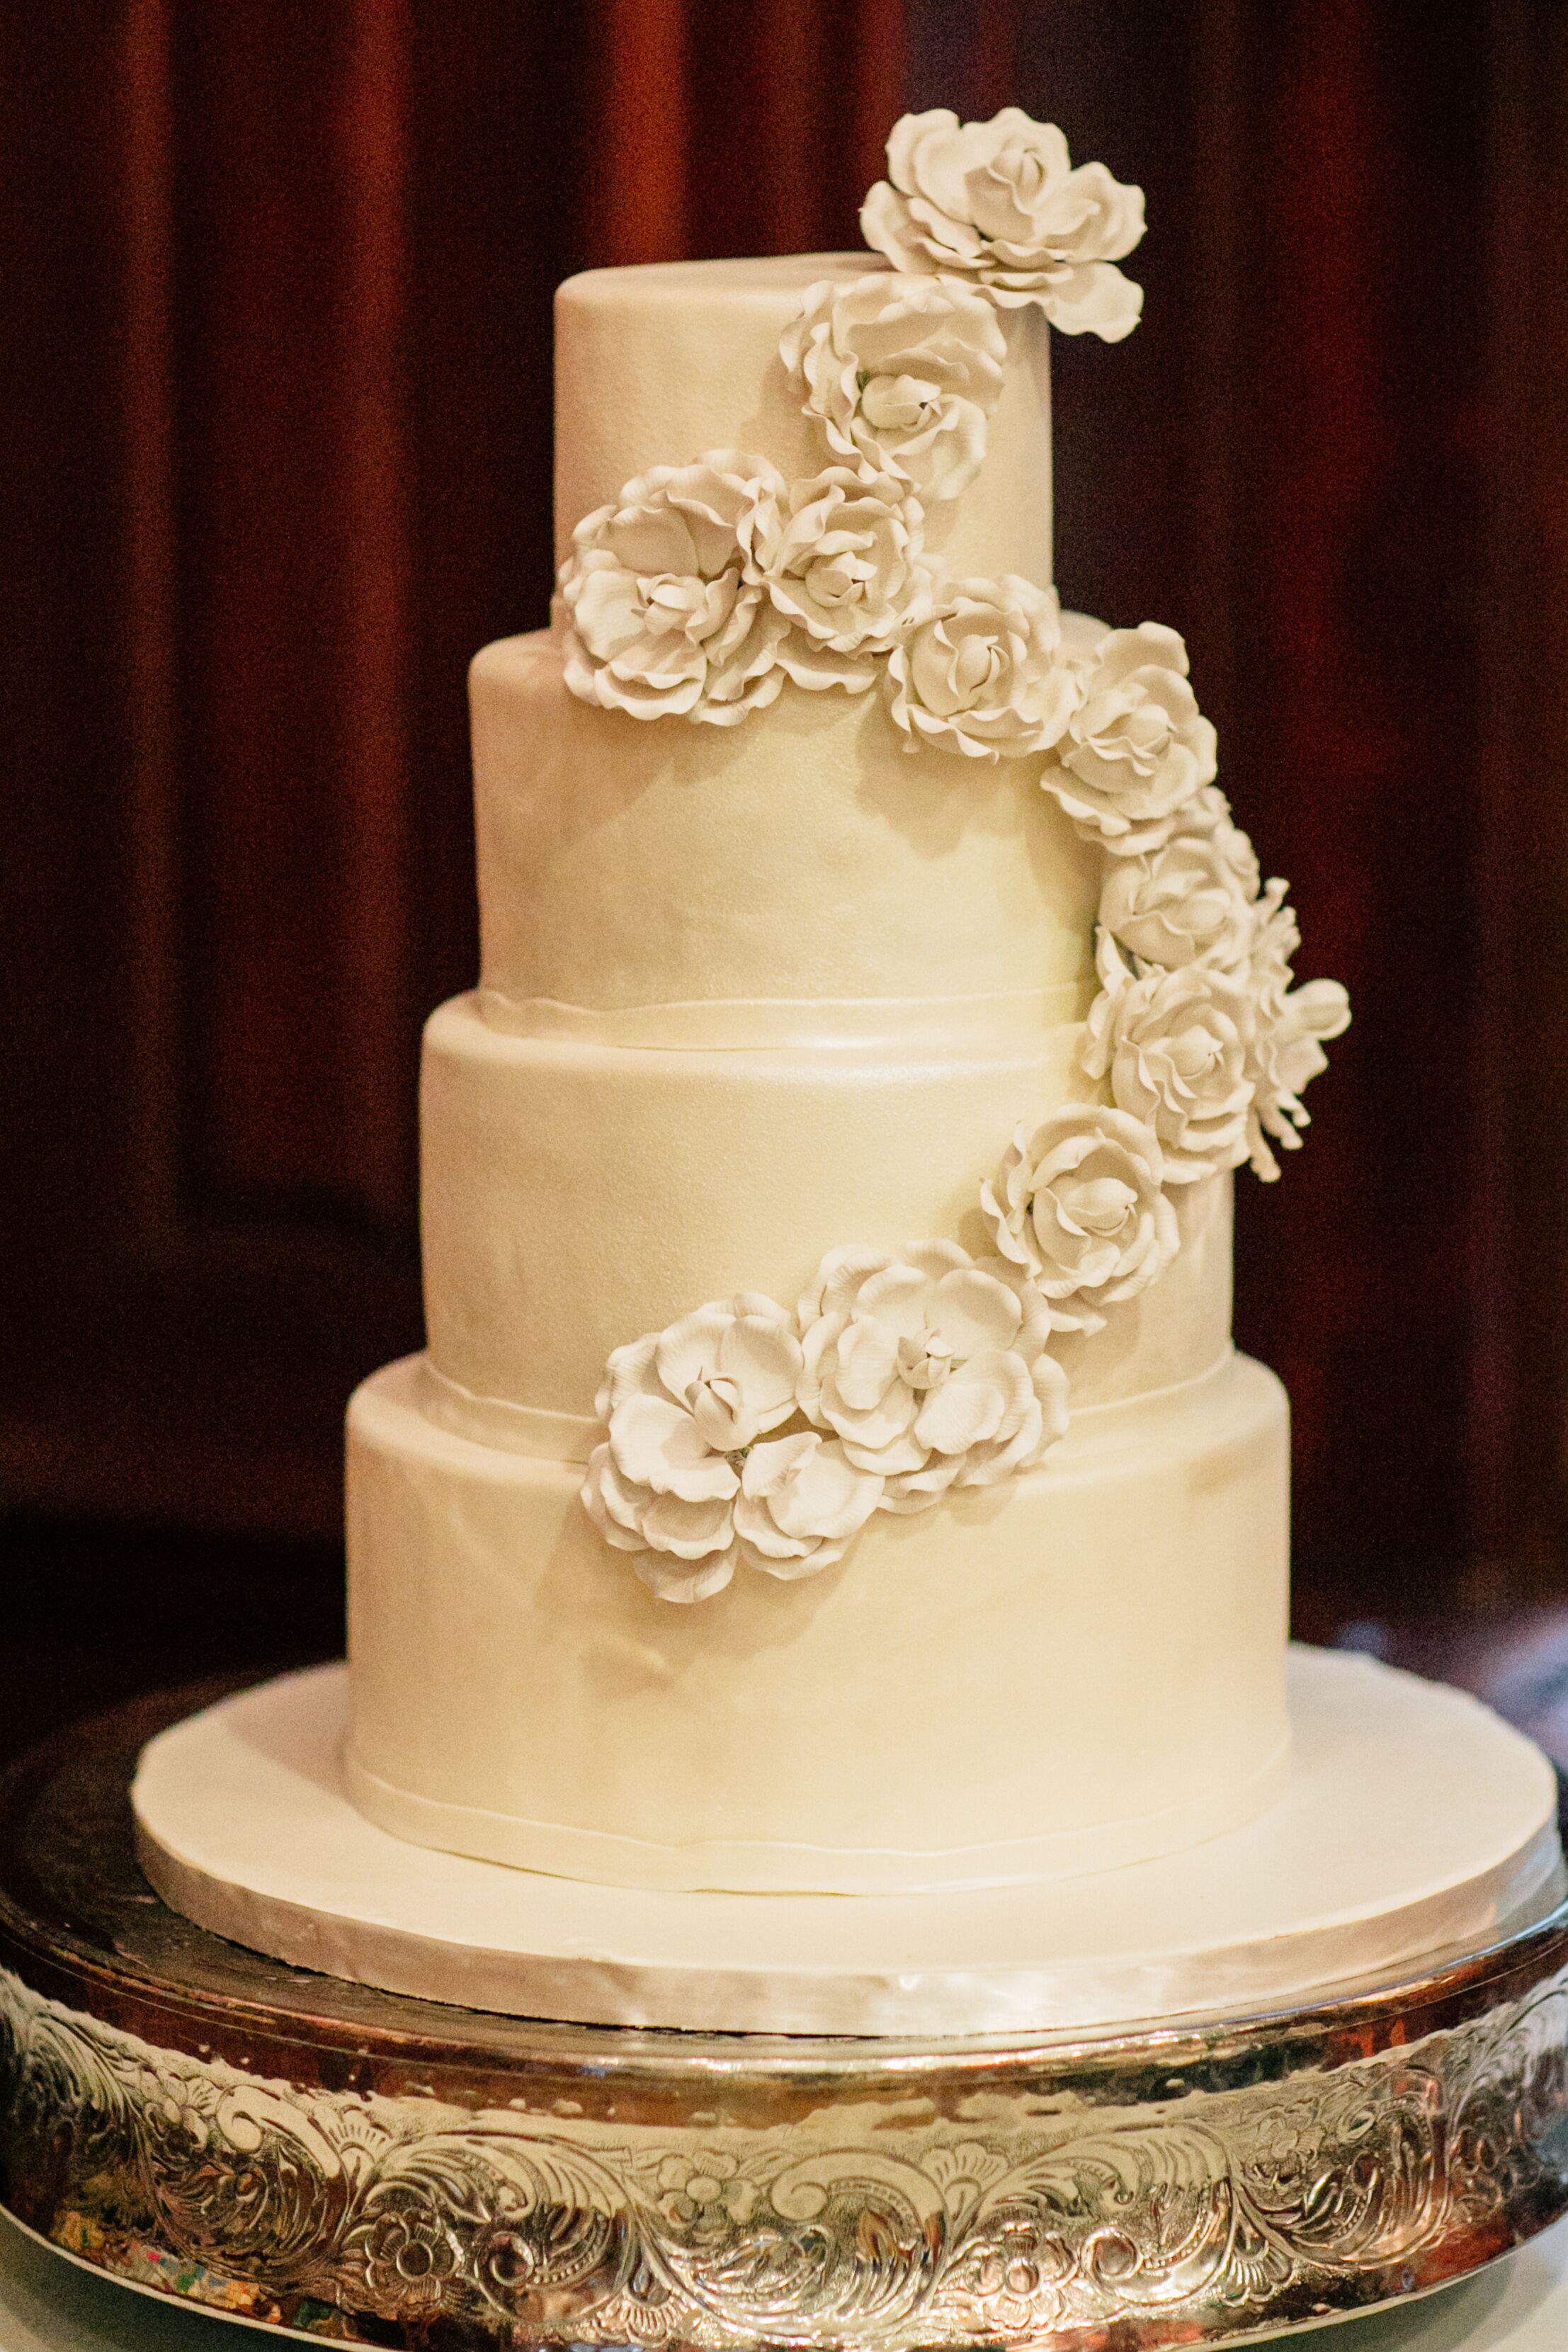 Ivory Wedding Cake With Floral Accents